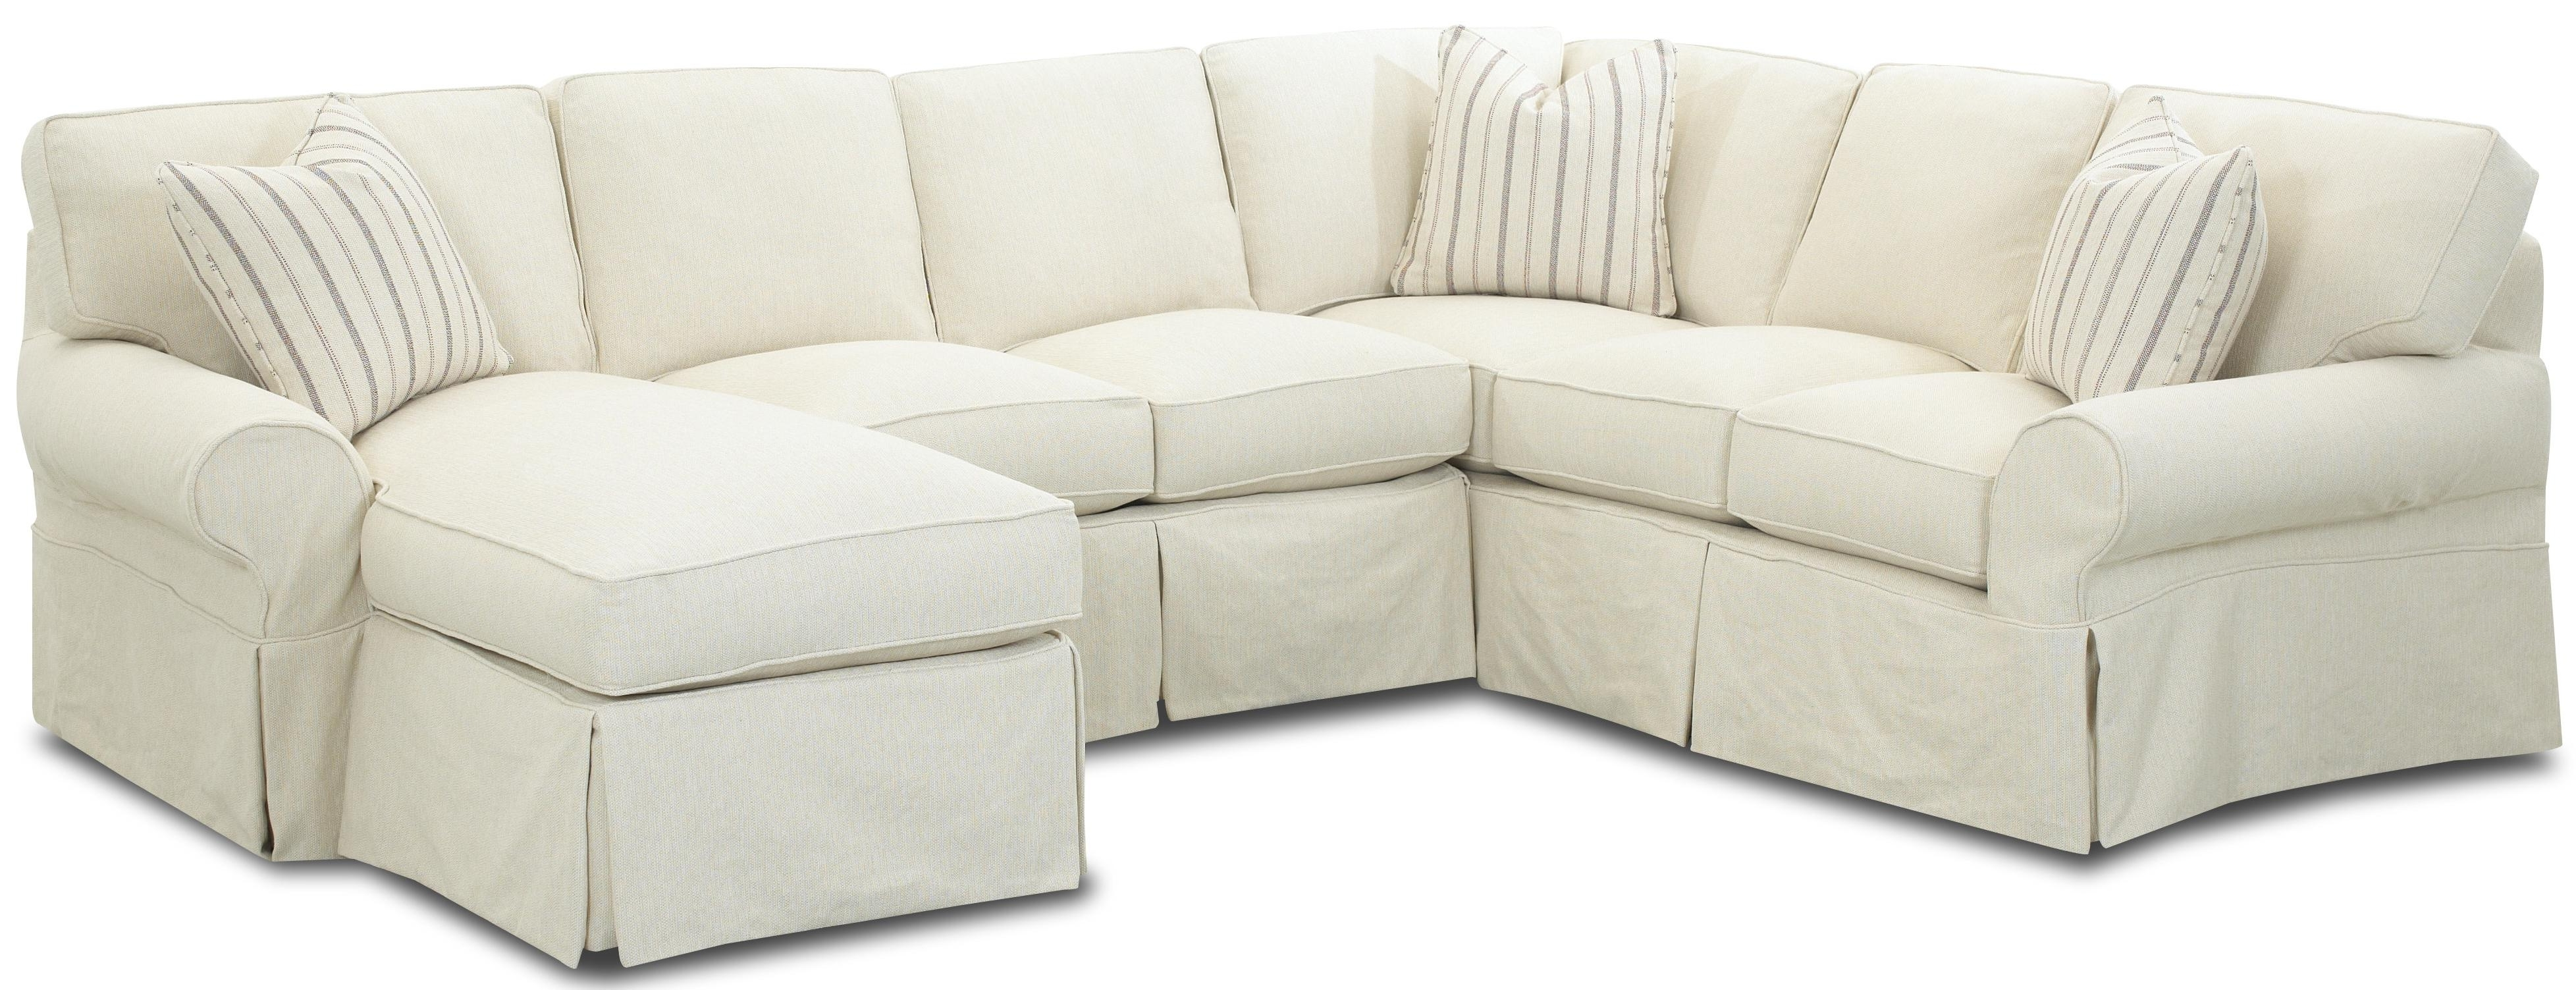 Awesome Slipcover Sectional Sofa With Chaise 91 For Modern Sofa Within Favorite Slipcovers For Sectional Sofa With Chaise (View 6 of 15)